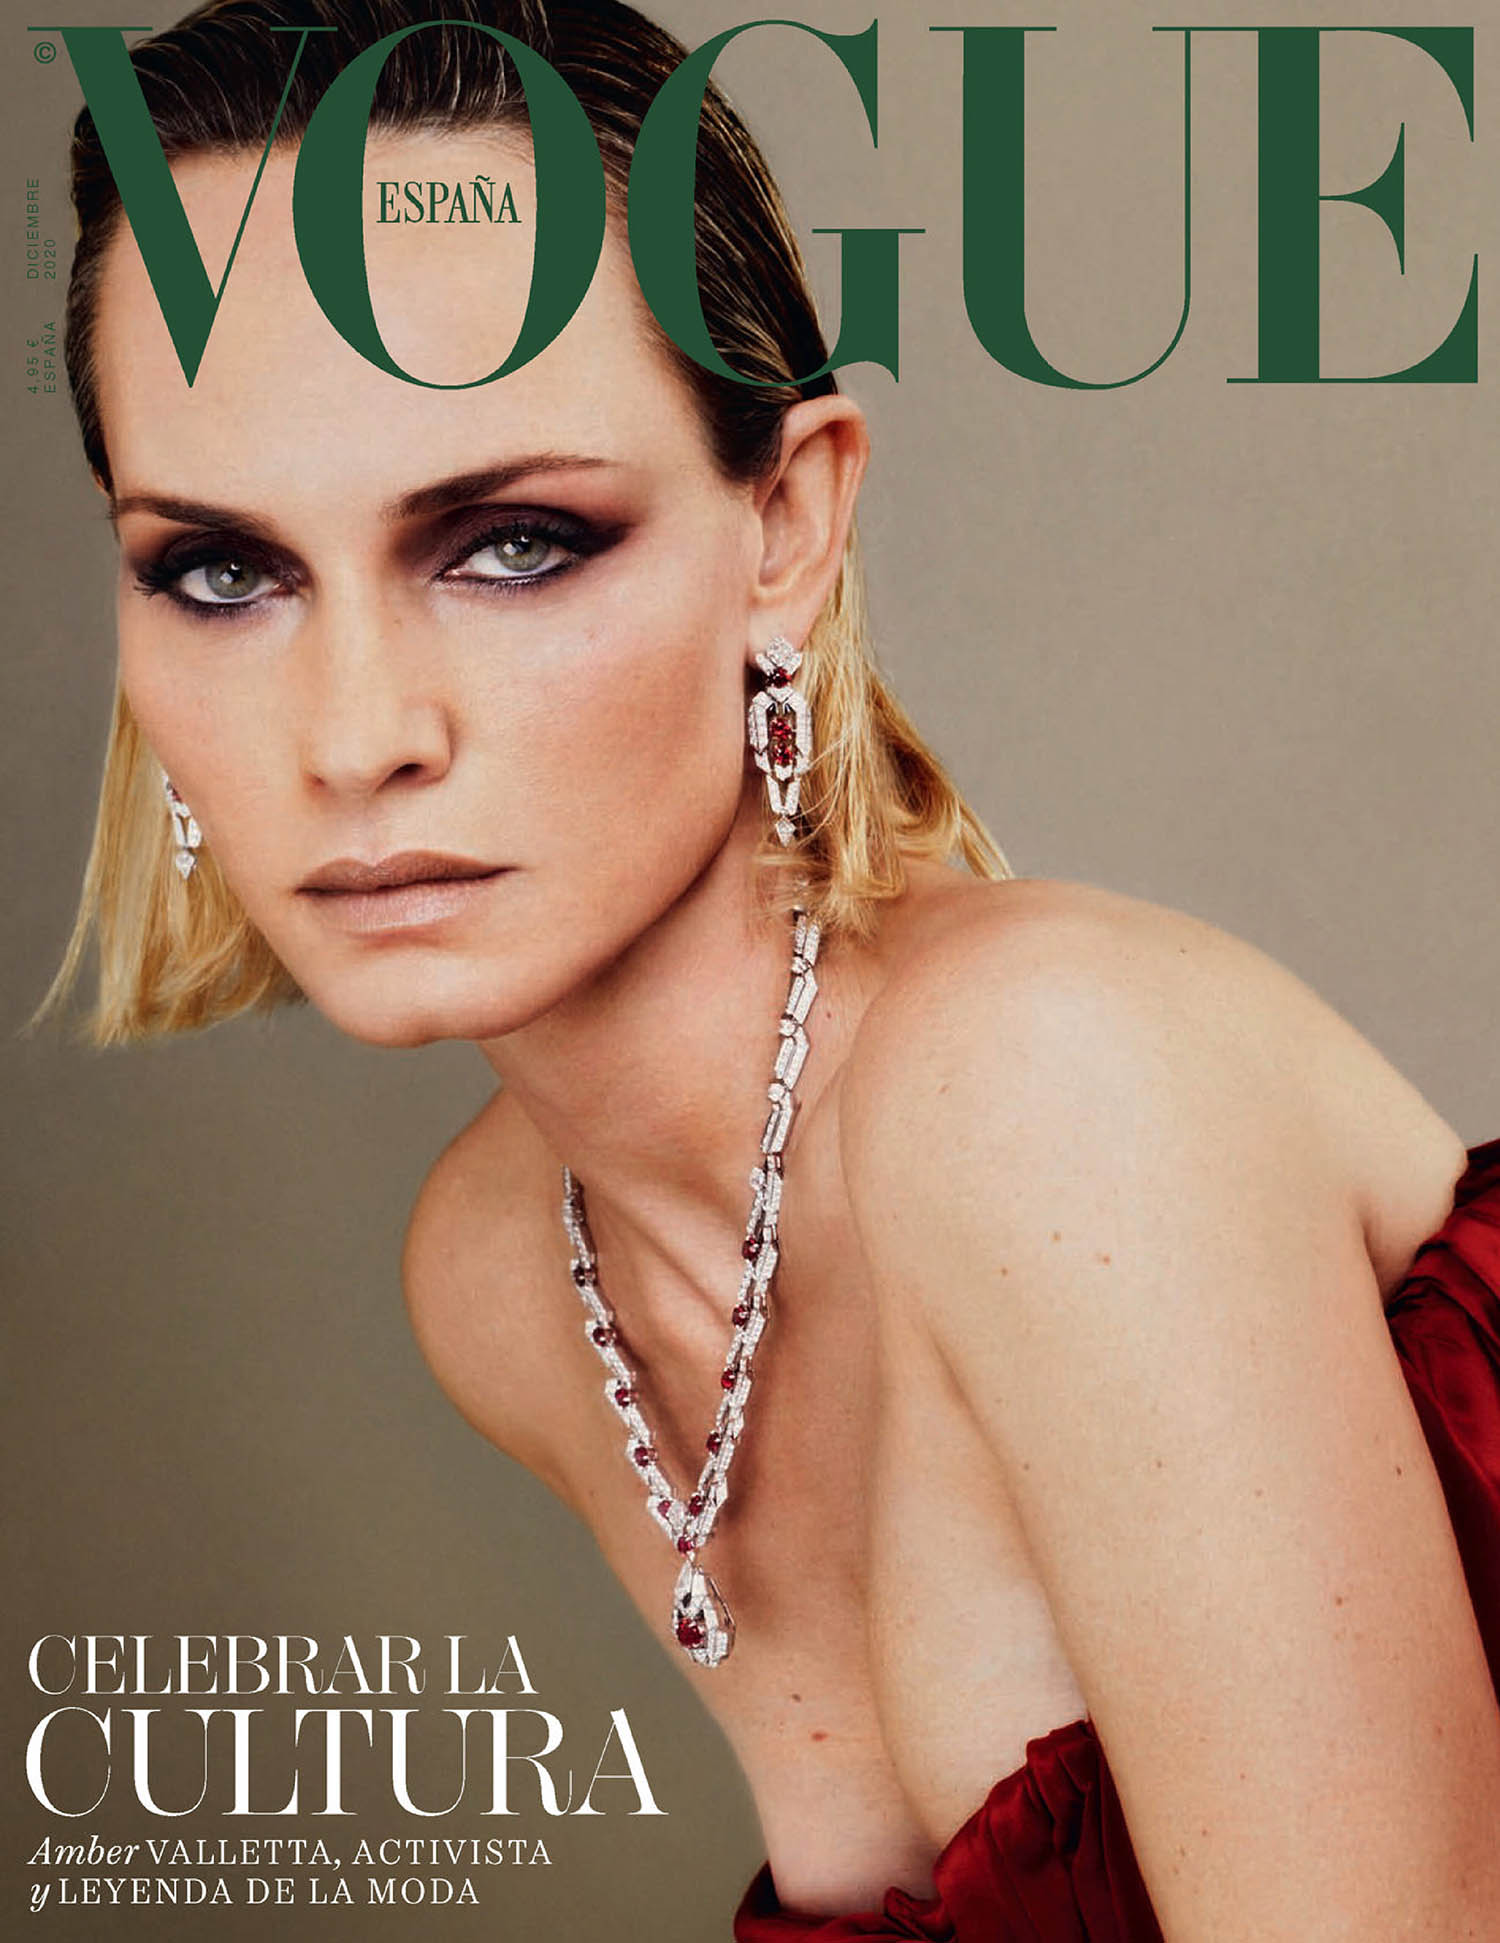 Amber Valletta covers Vogue Spain December 2020 by Txema Yeste